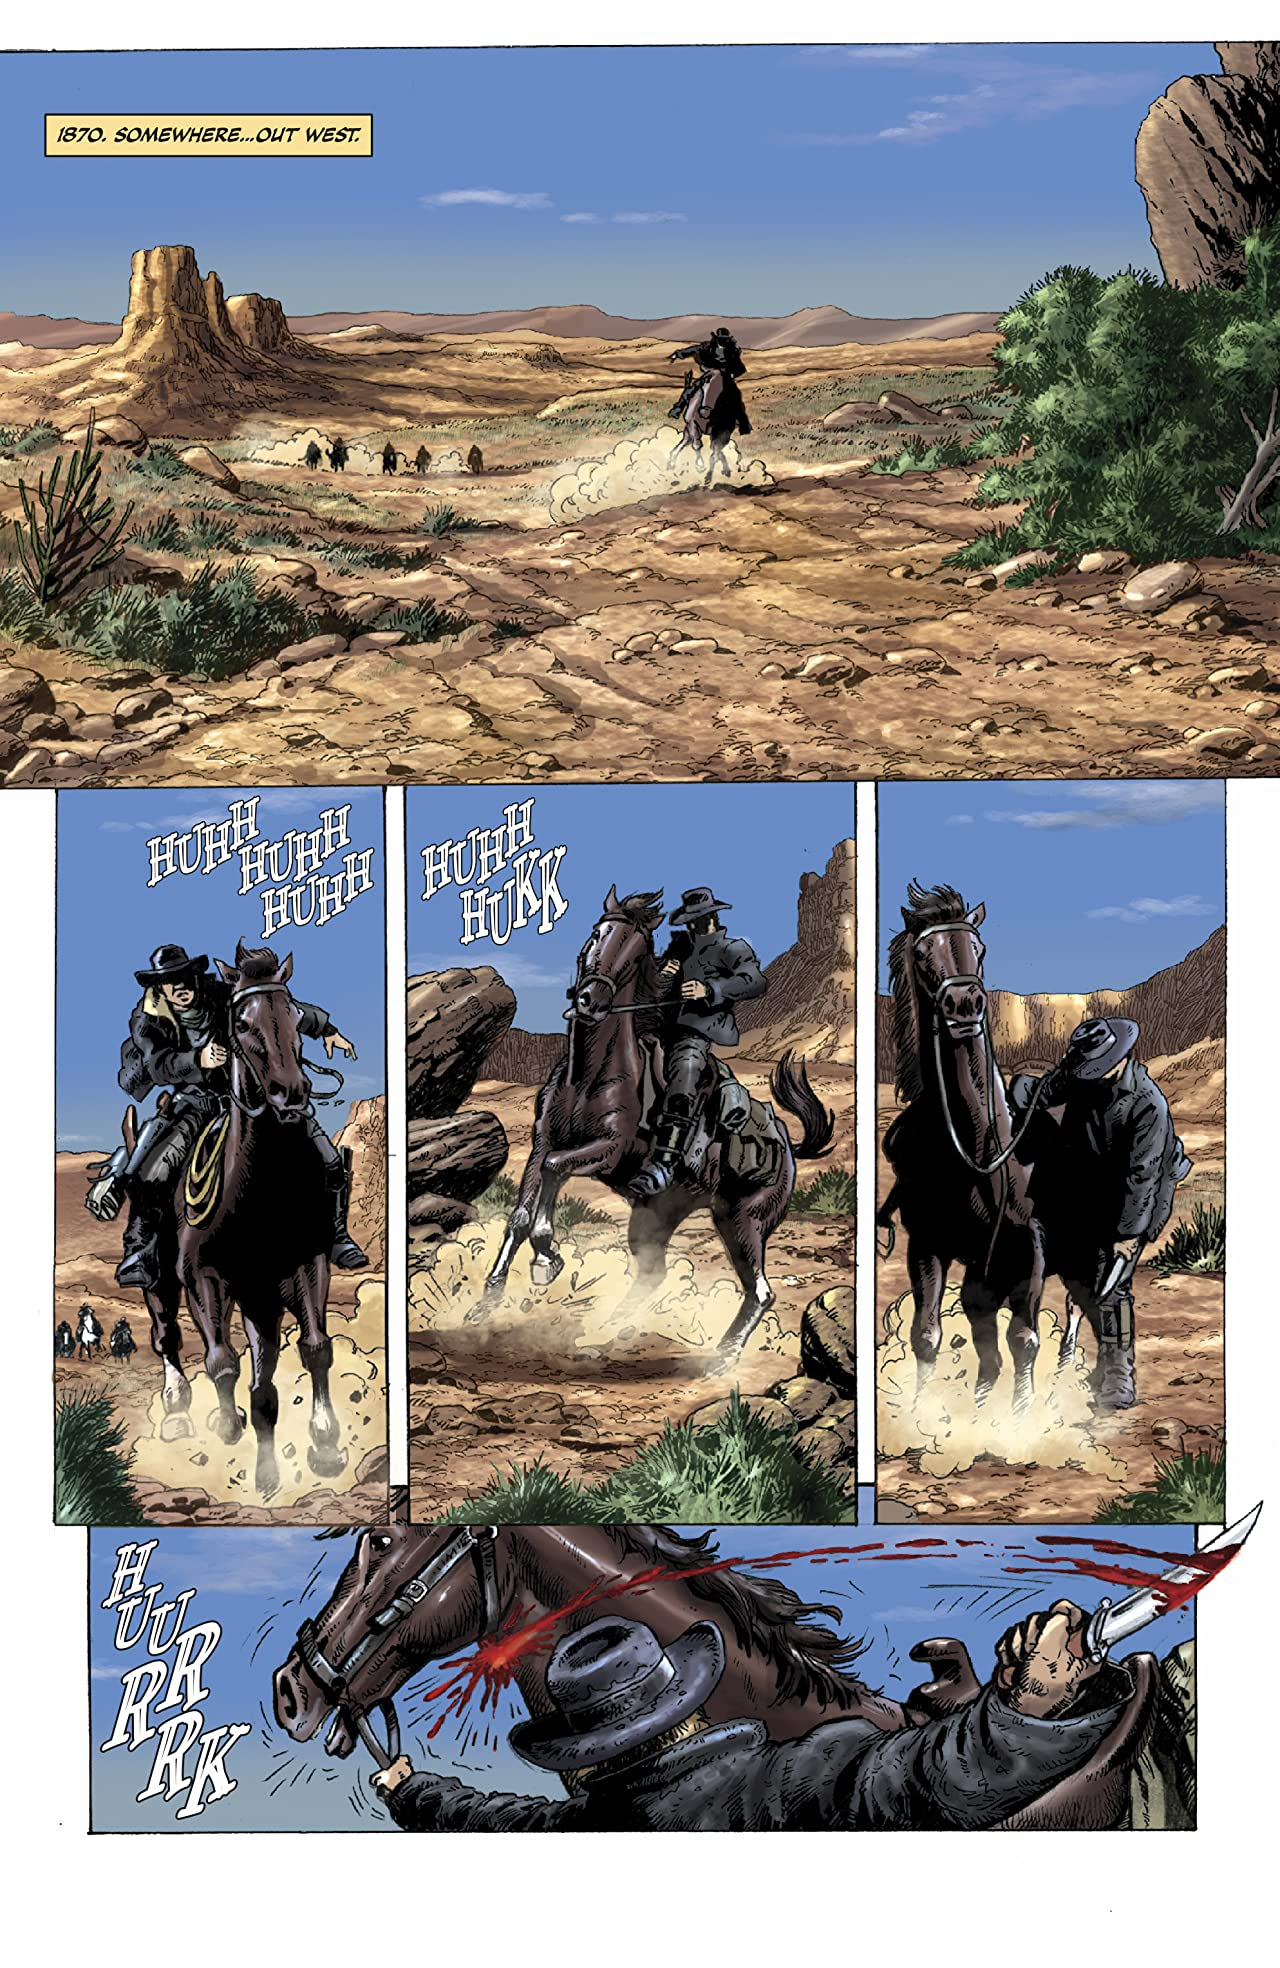 The Lone Ranger Vol. 2 #14